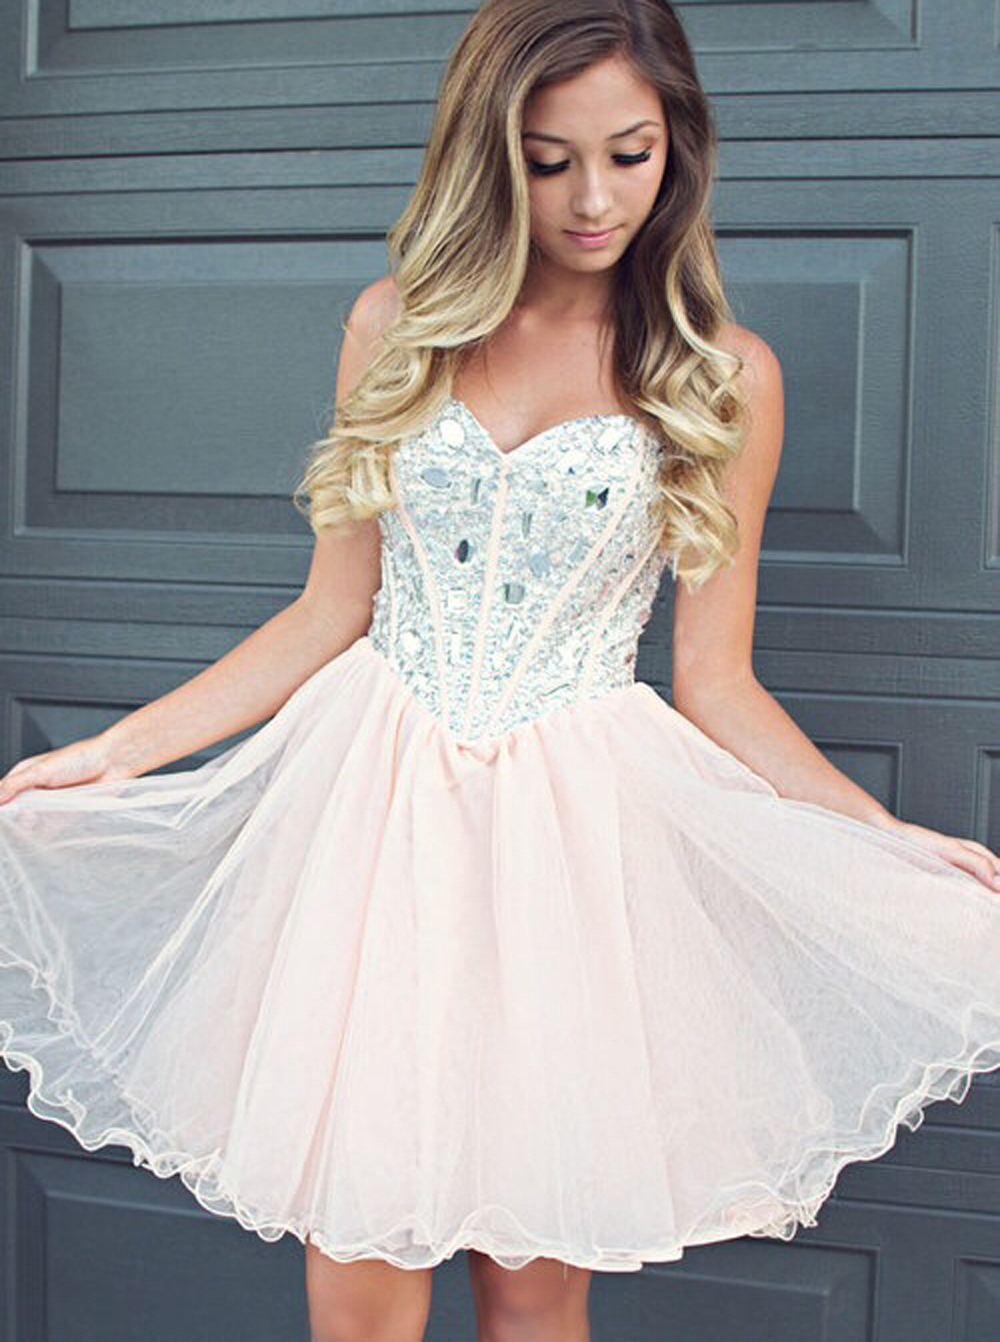 Fabulous Sweetheart Light Champagne Short Homecoming Dress with Beading фото